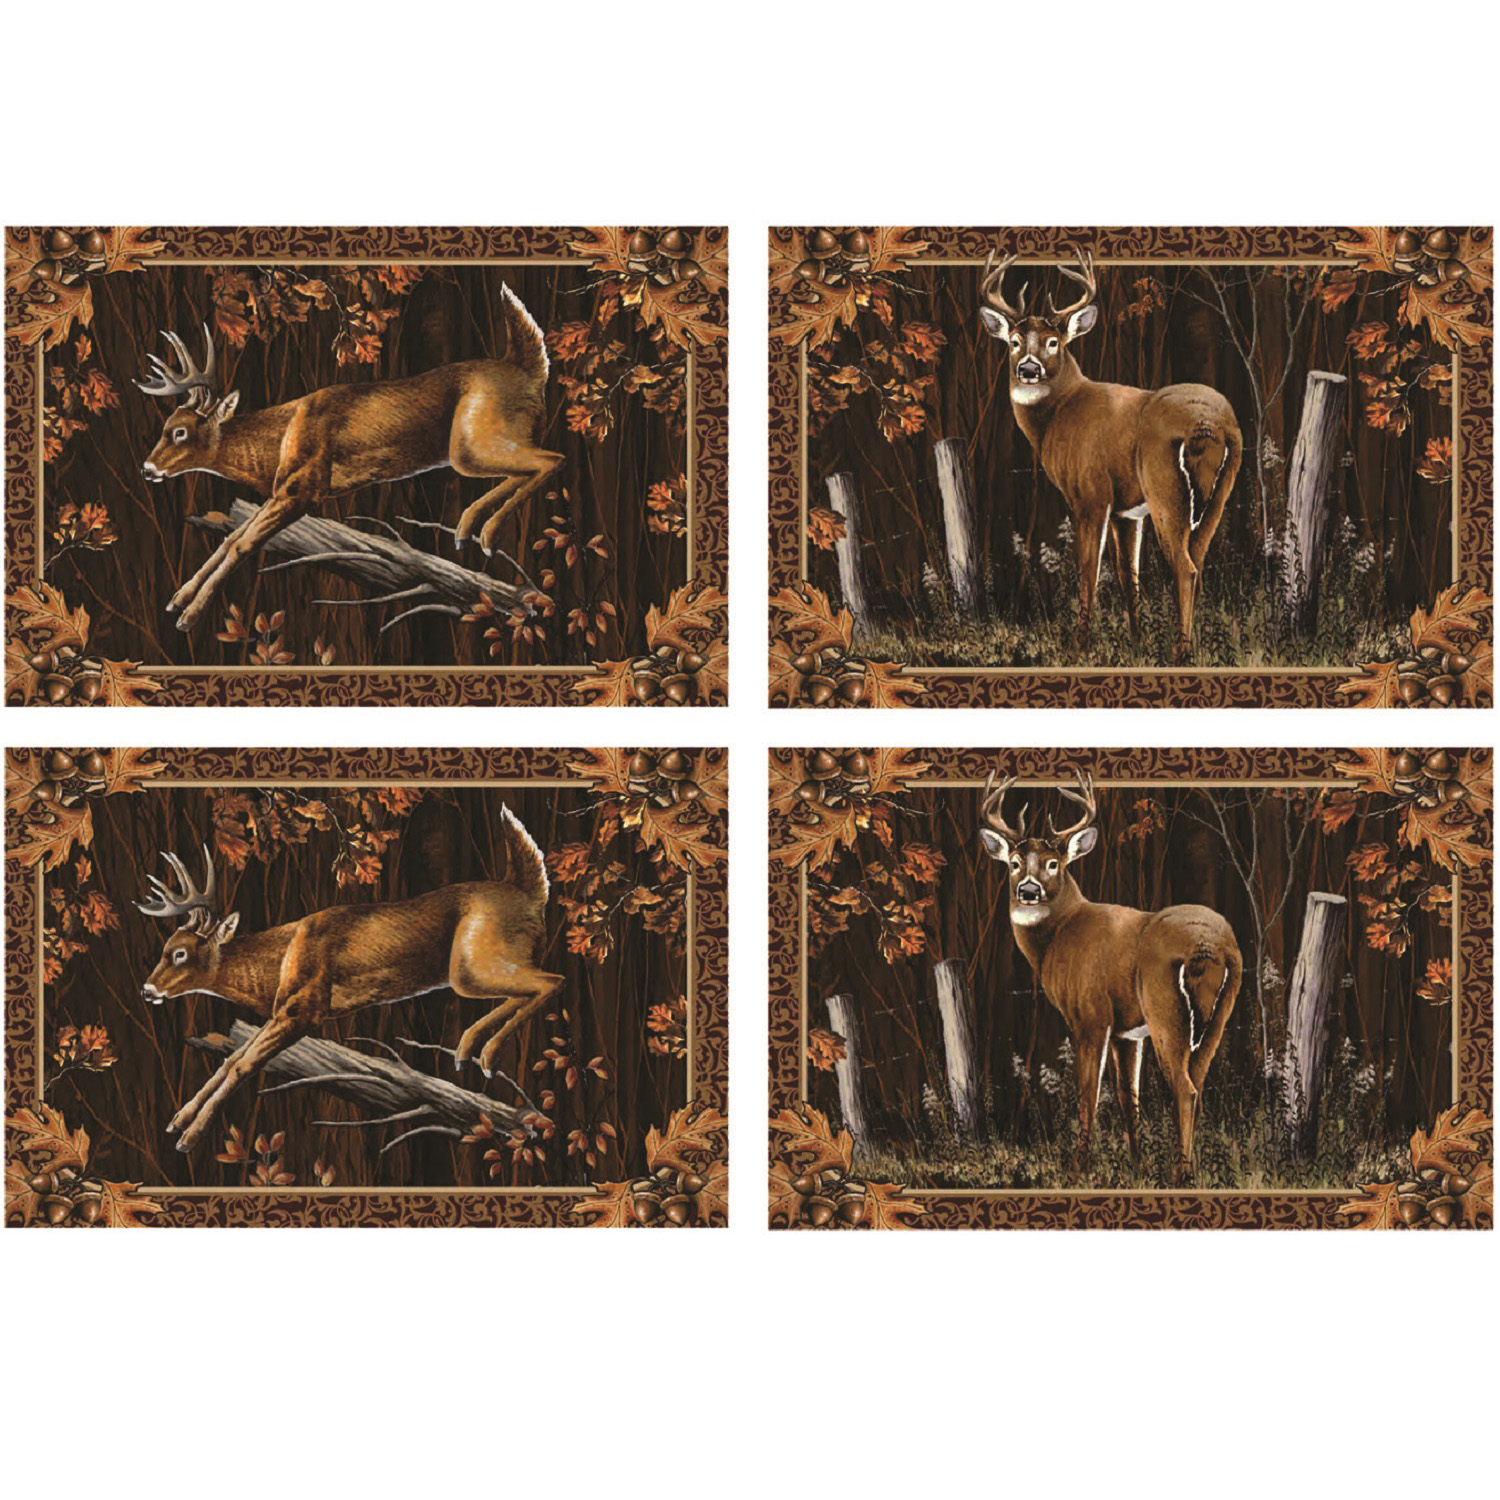 Rivers Edge 4 Piece Deer Placemat Set by River's Edge Products